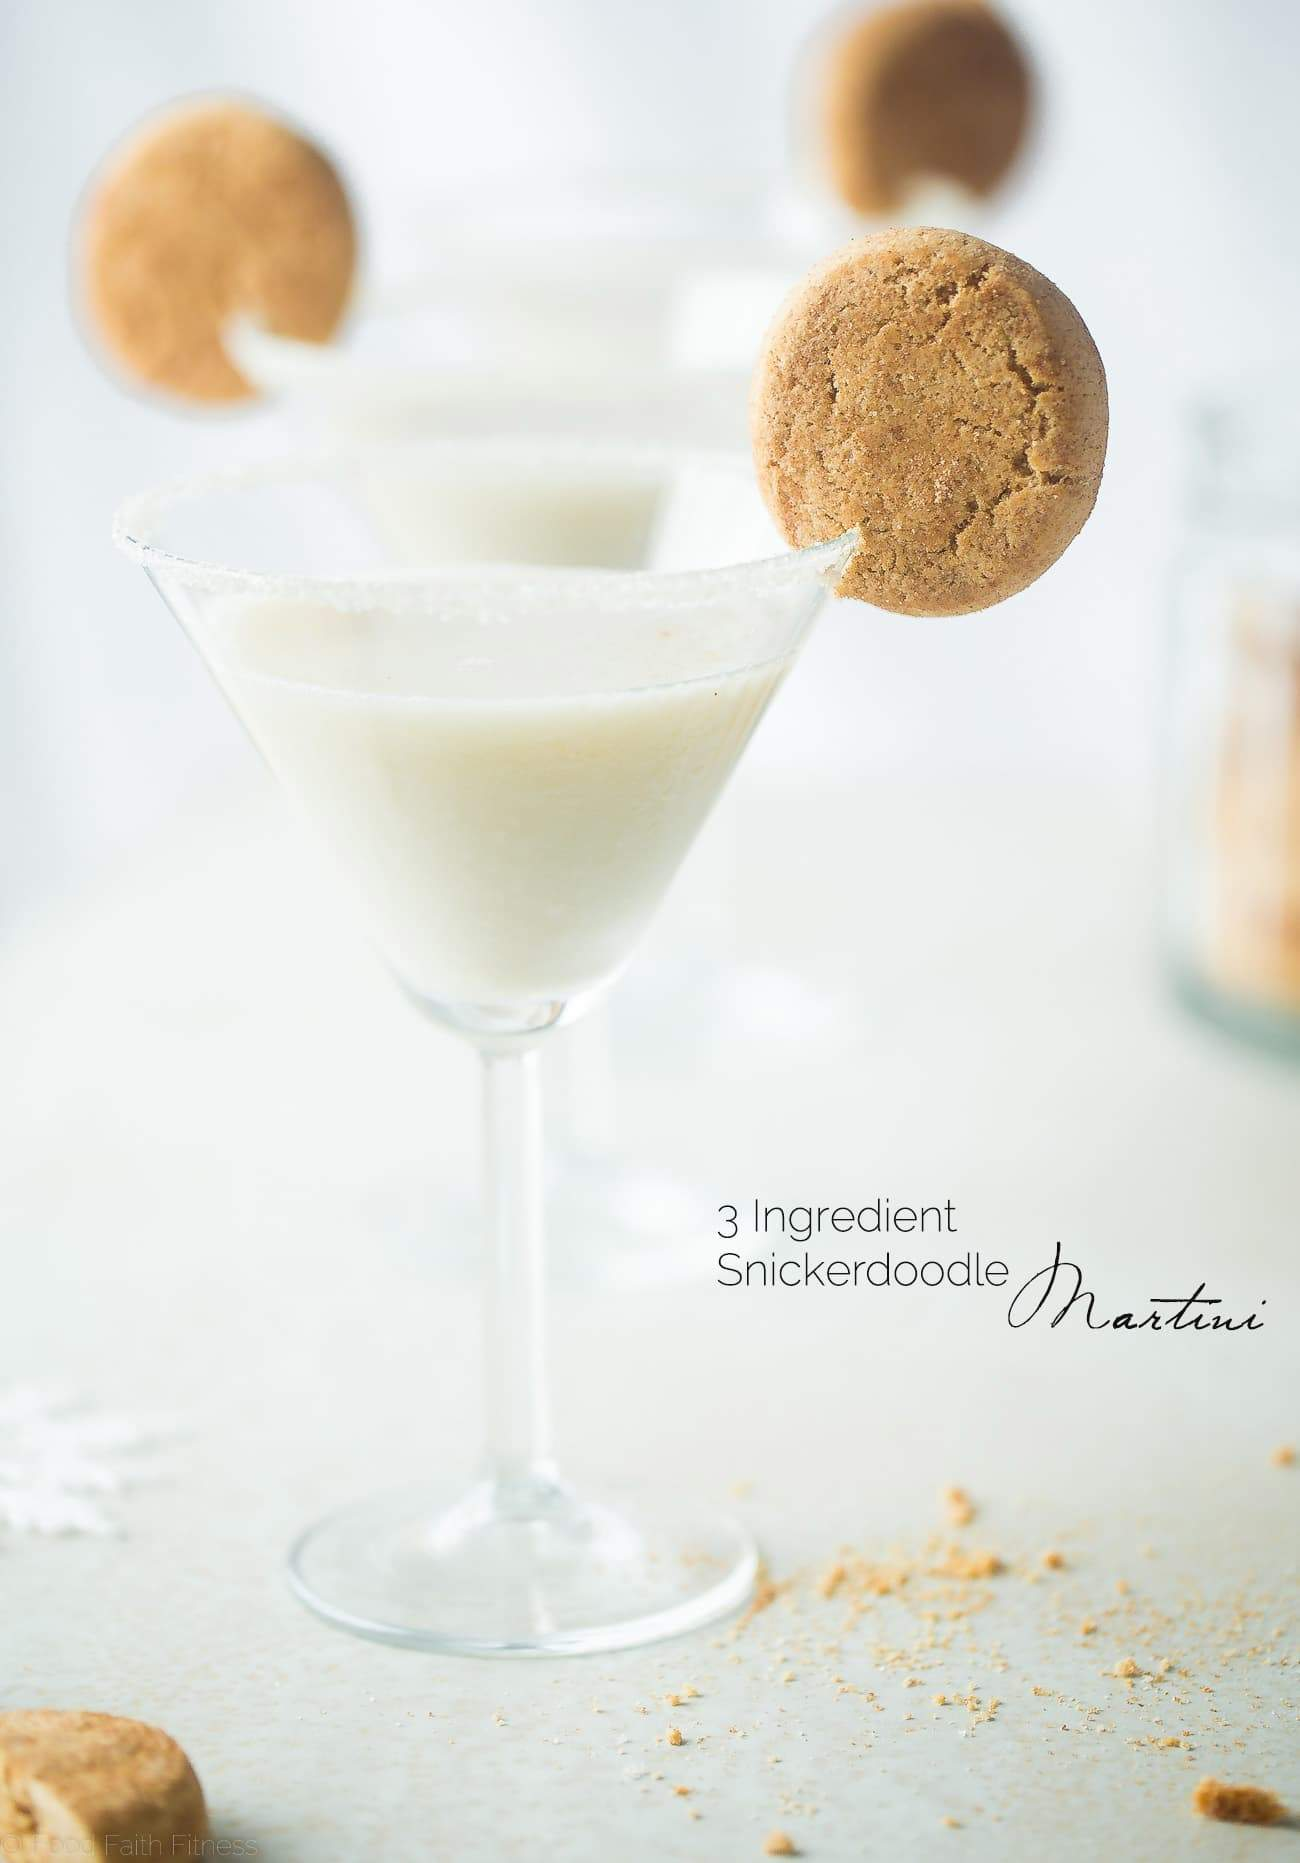 3 Ingredient Snickerdoodle Martini - This easy, 3 ingredient martini tastes like a snickerdoodle cookie! It's a creamy, healthier and dairy-free cocktail that is perfect to serve on Christmas! | Foodfaithfitness.com | @FoodFaithFit